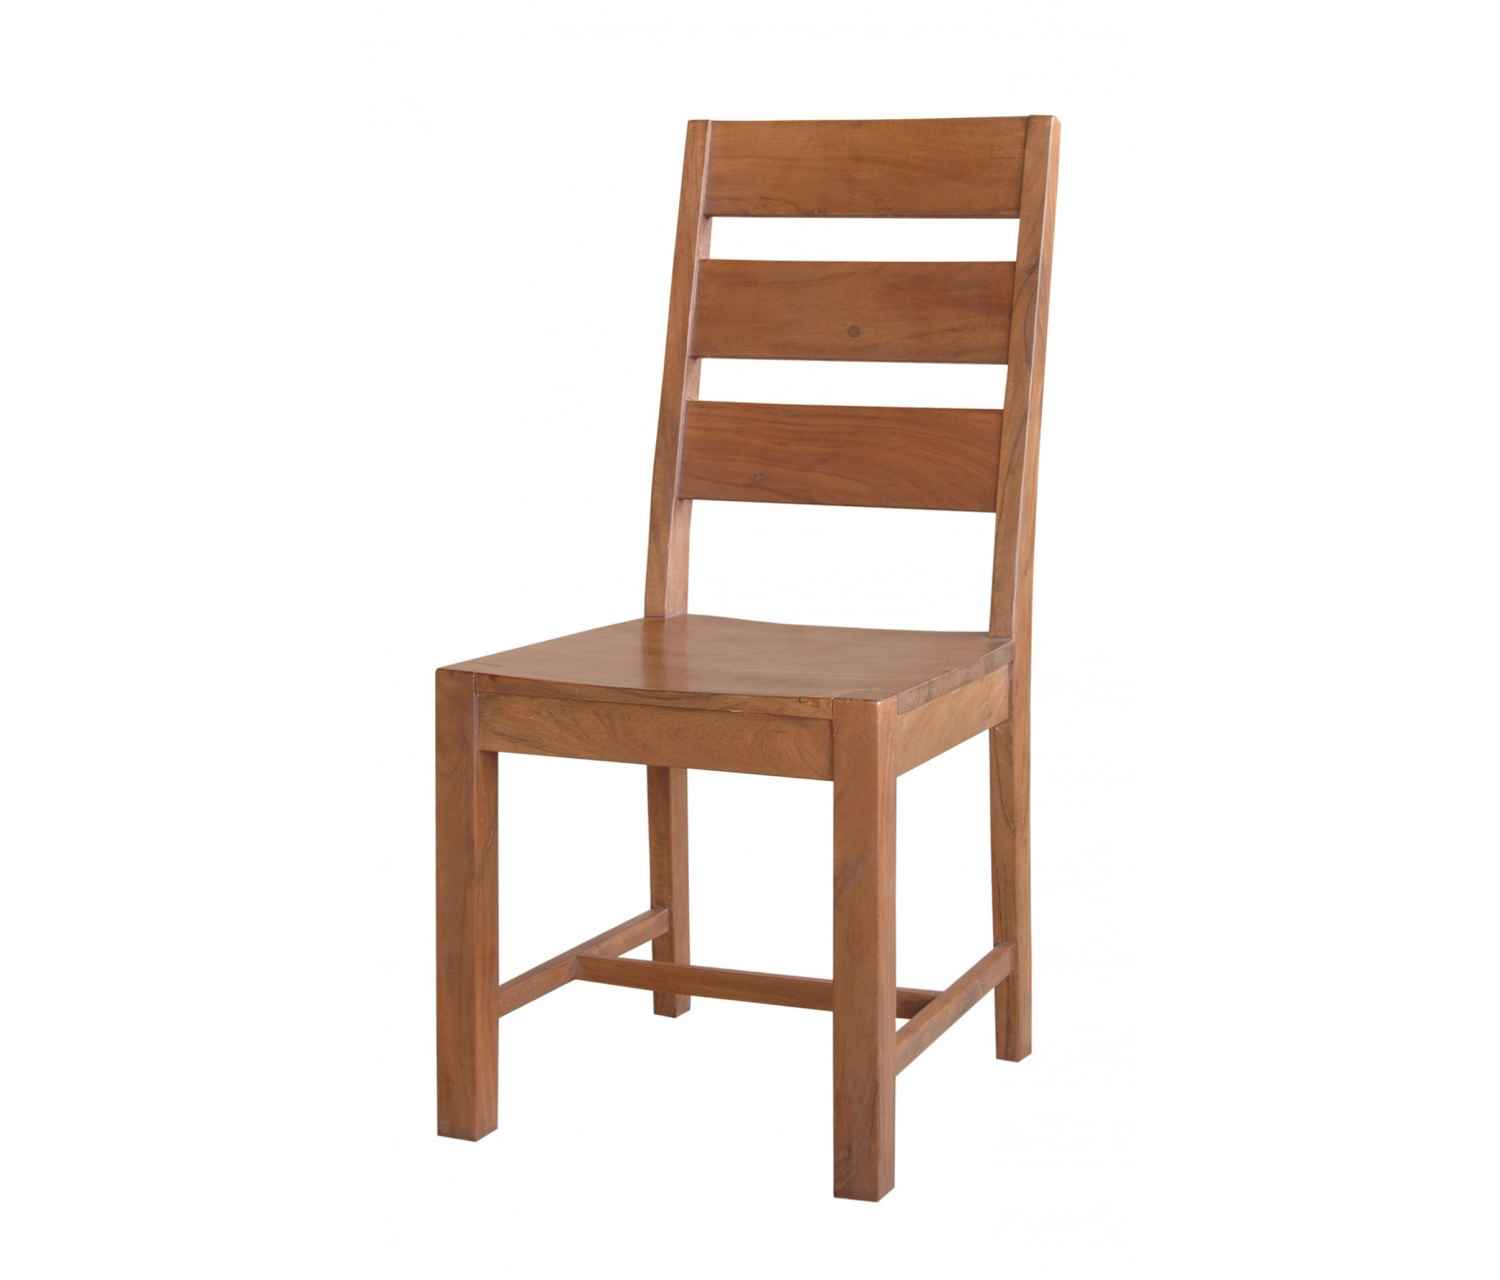 Wooden Dining Room Chair Furniture. Full resolution‎  portraiture, nominally Width 1500 Height 1280 pixels, portraiture with #512A1C.